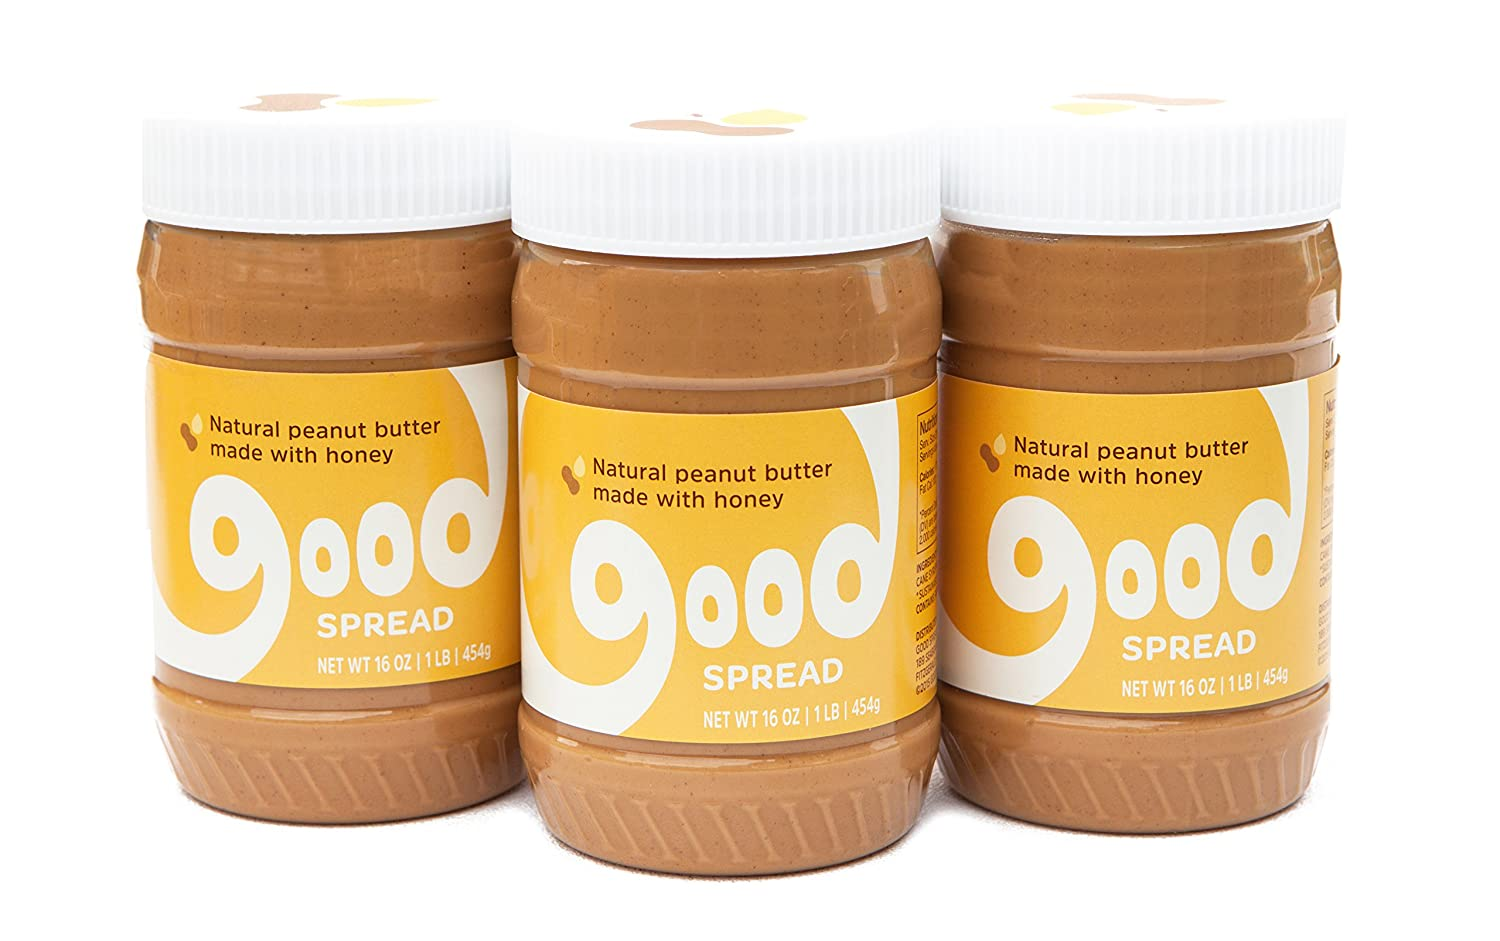 Good Spread Natural Peanut Butter Blended with Honey, Smooth, All Natural Magic, 16 oz. Jar (3 pack)